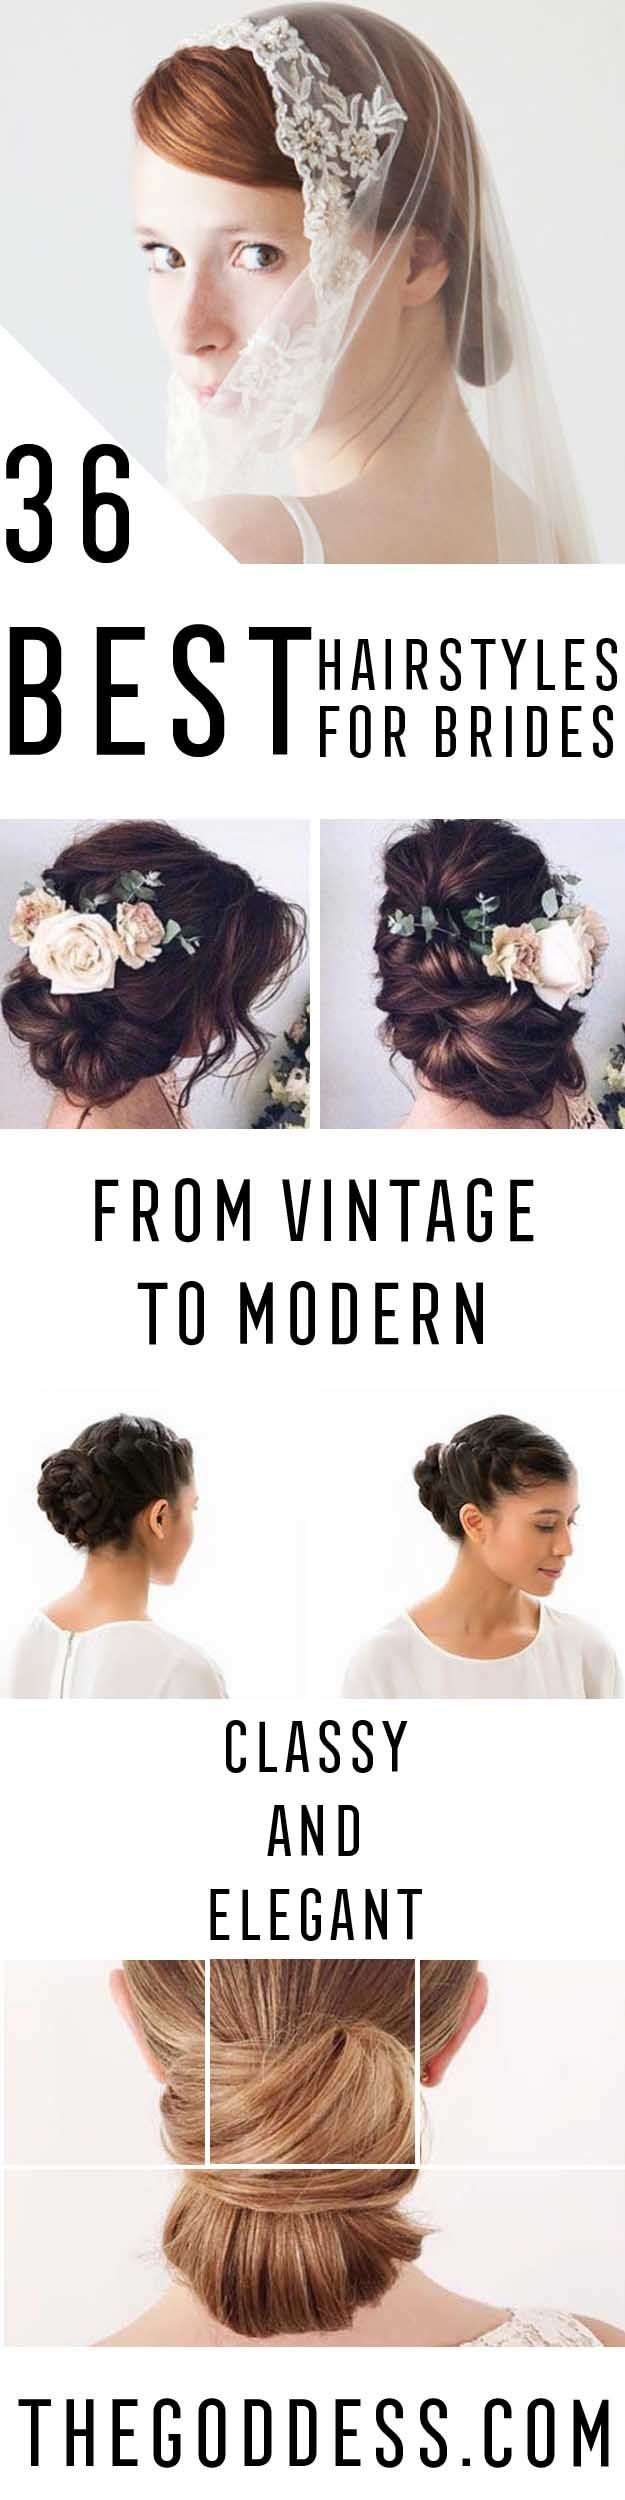 348 best Hairstyles for Long Hair images on Pinterest | Hairstyle ...